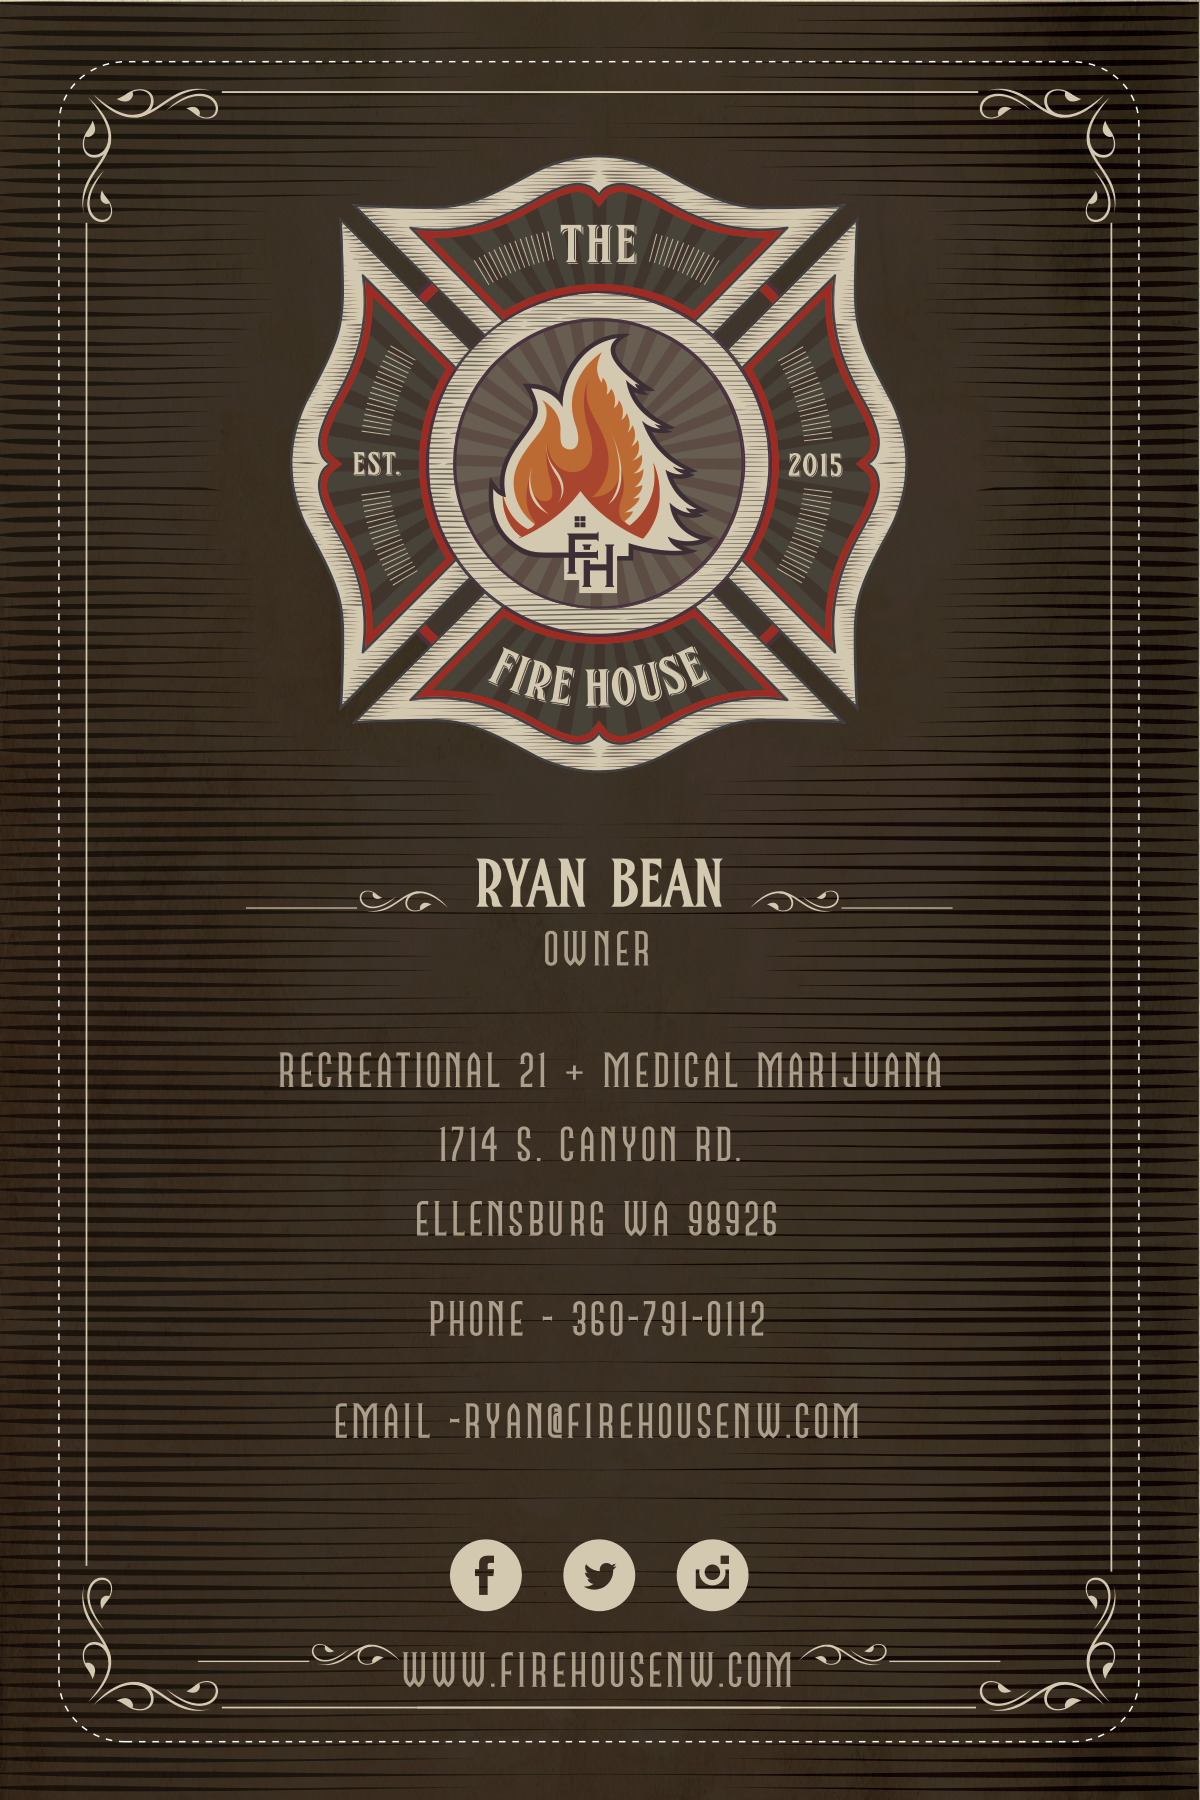 Business Card for Ryan Bean